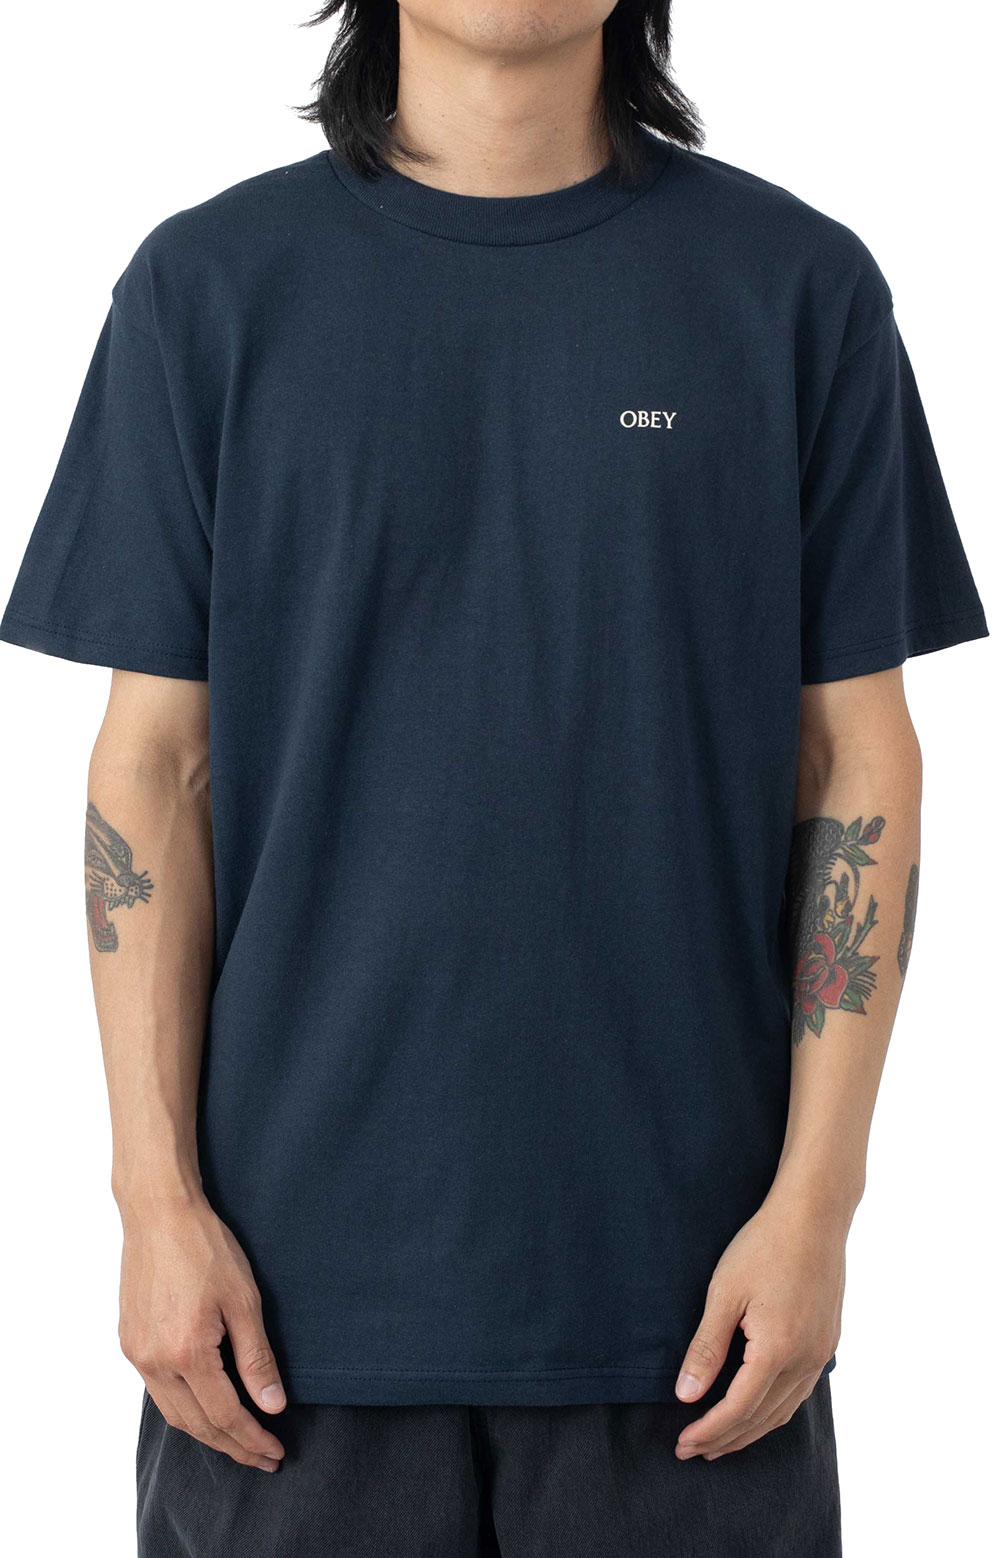 Obey Radiant Lotus T-Shirt - Navy  2